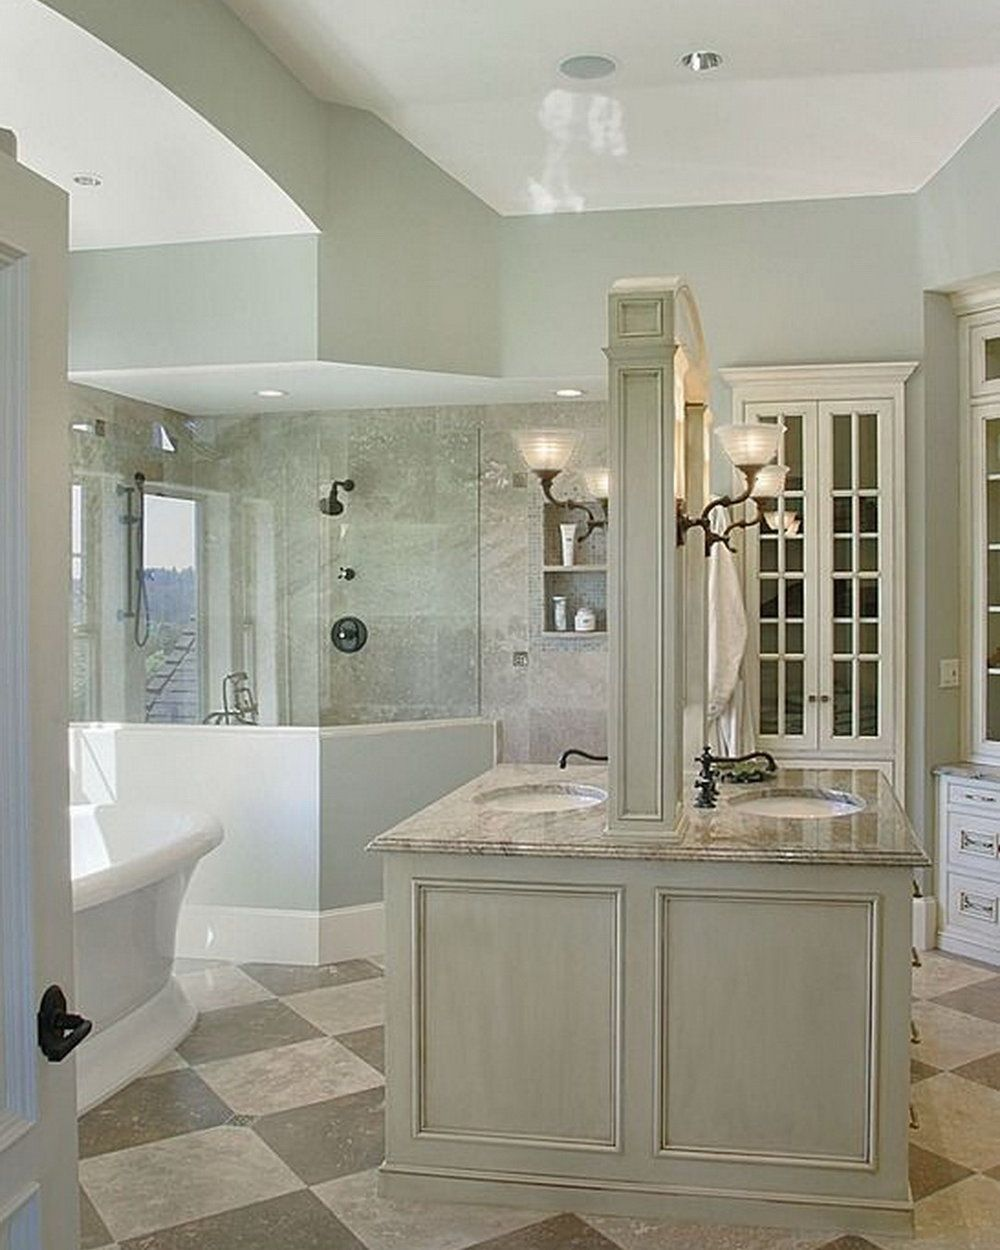 12 Luxurious Bathroom Design Ideas | Wall sconces, Marbles and ...